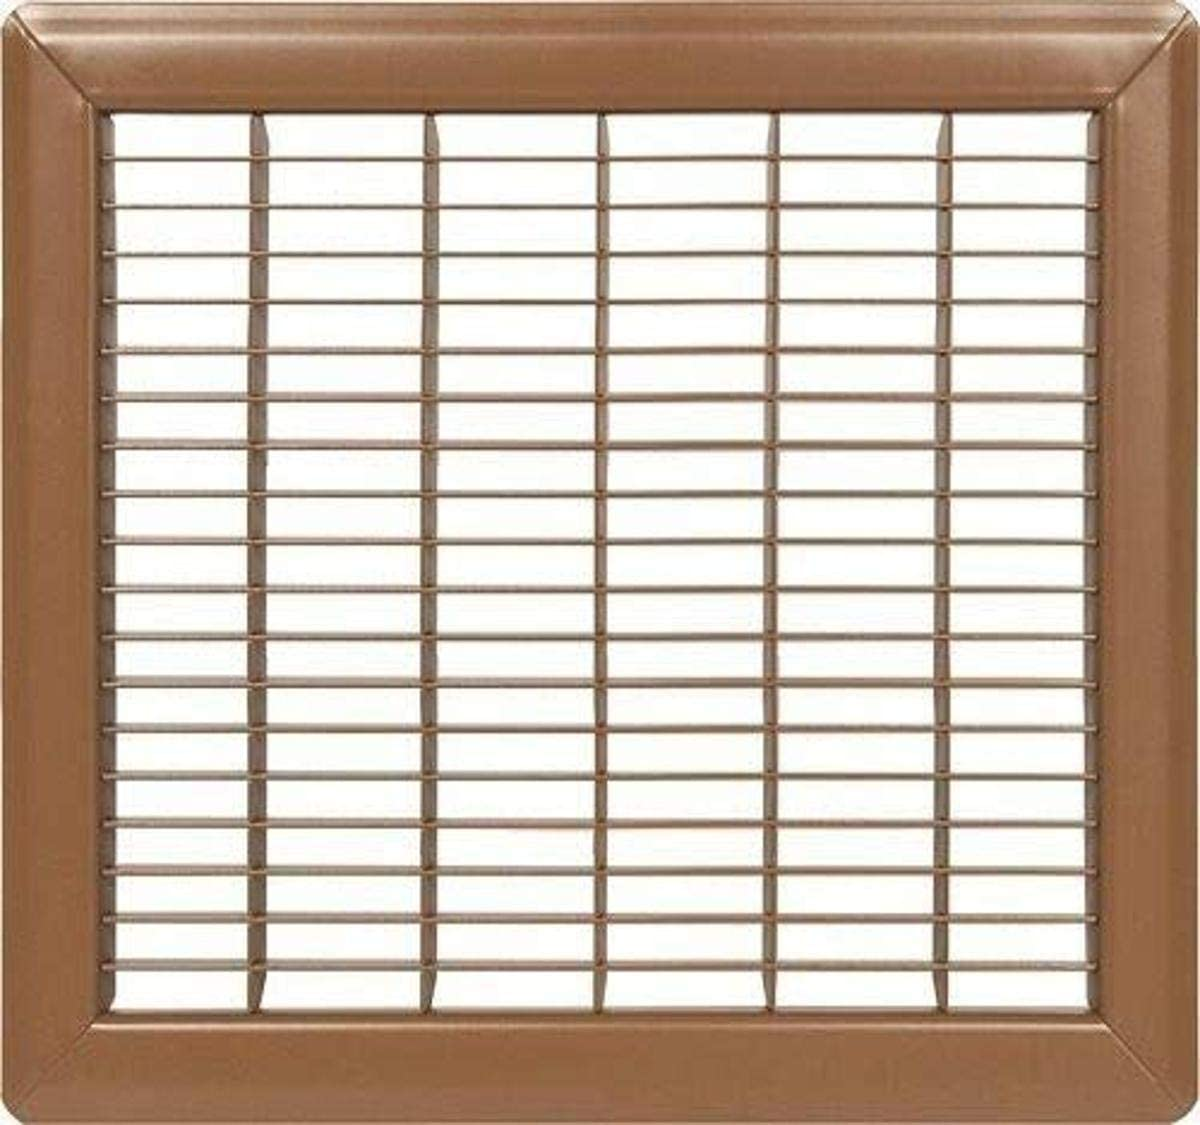 Directly managed store Max 51% OFF Imperial Air Manufacturing RG1199 8X14 Grill quot TS BRN Floor